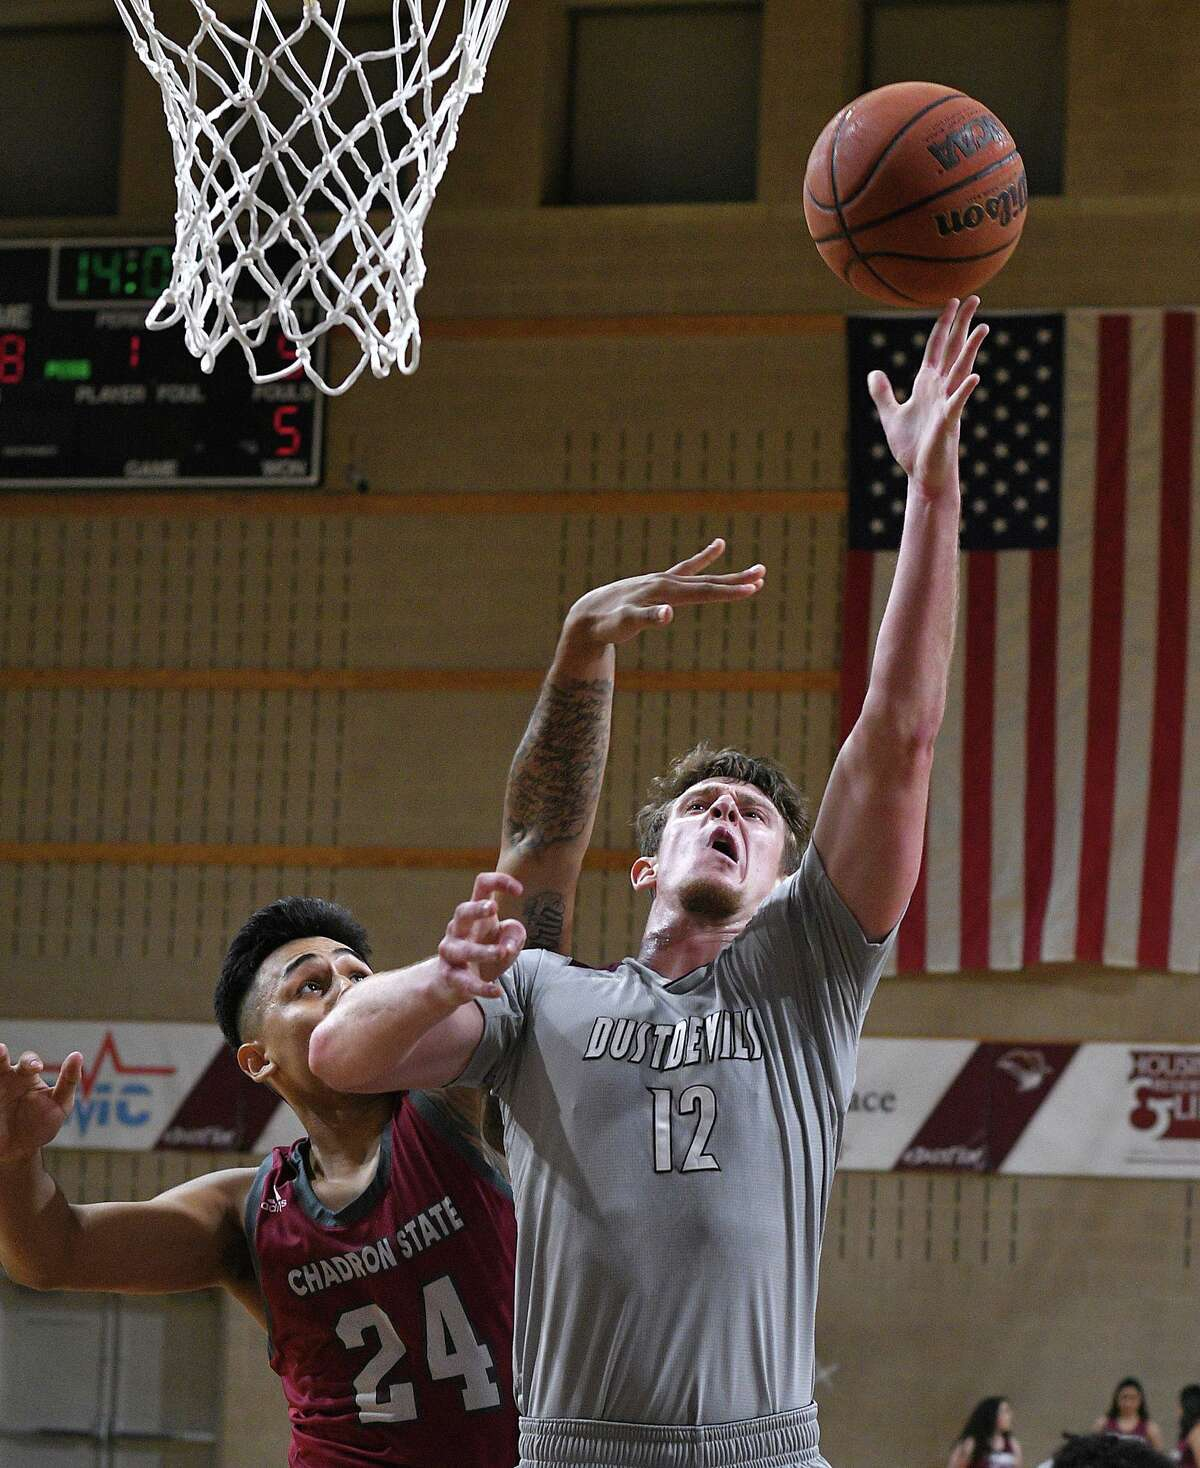 Tom Higgins goes for a basket for the TAMIU Dustdevils as they played Chadron State Friday at TAMIU.